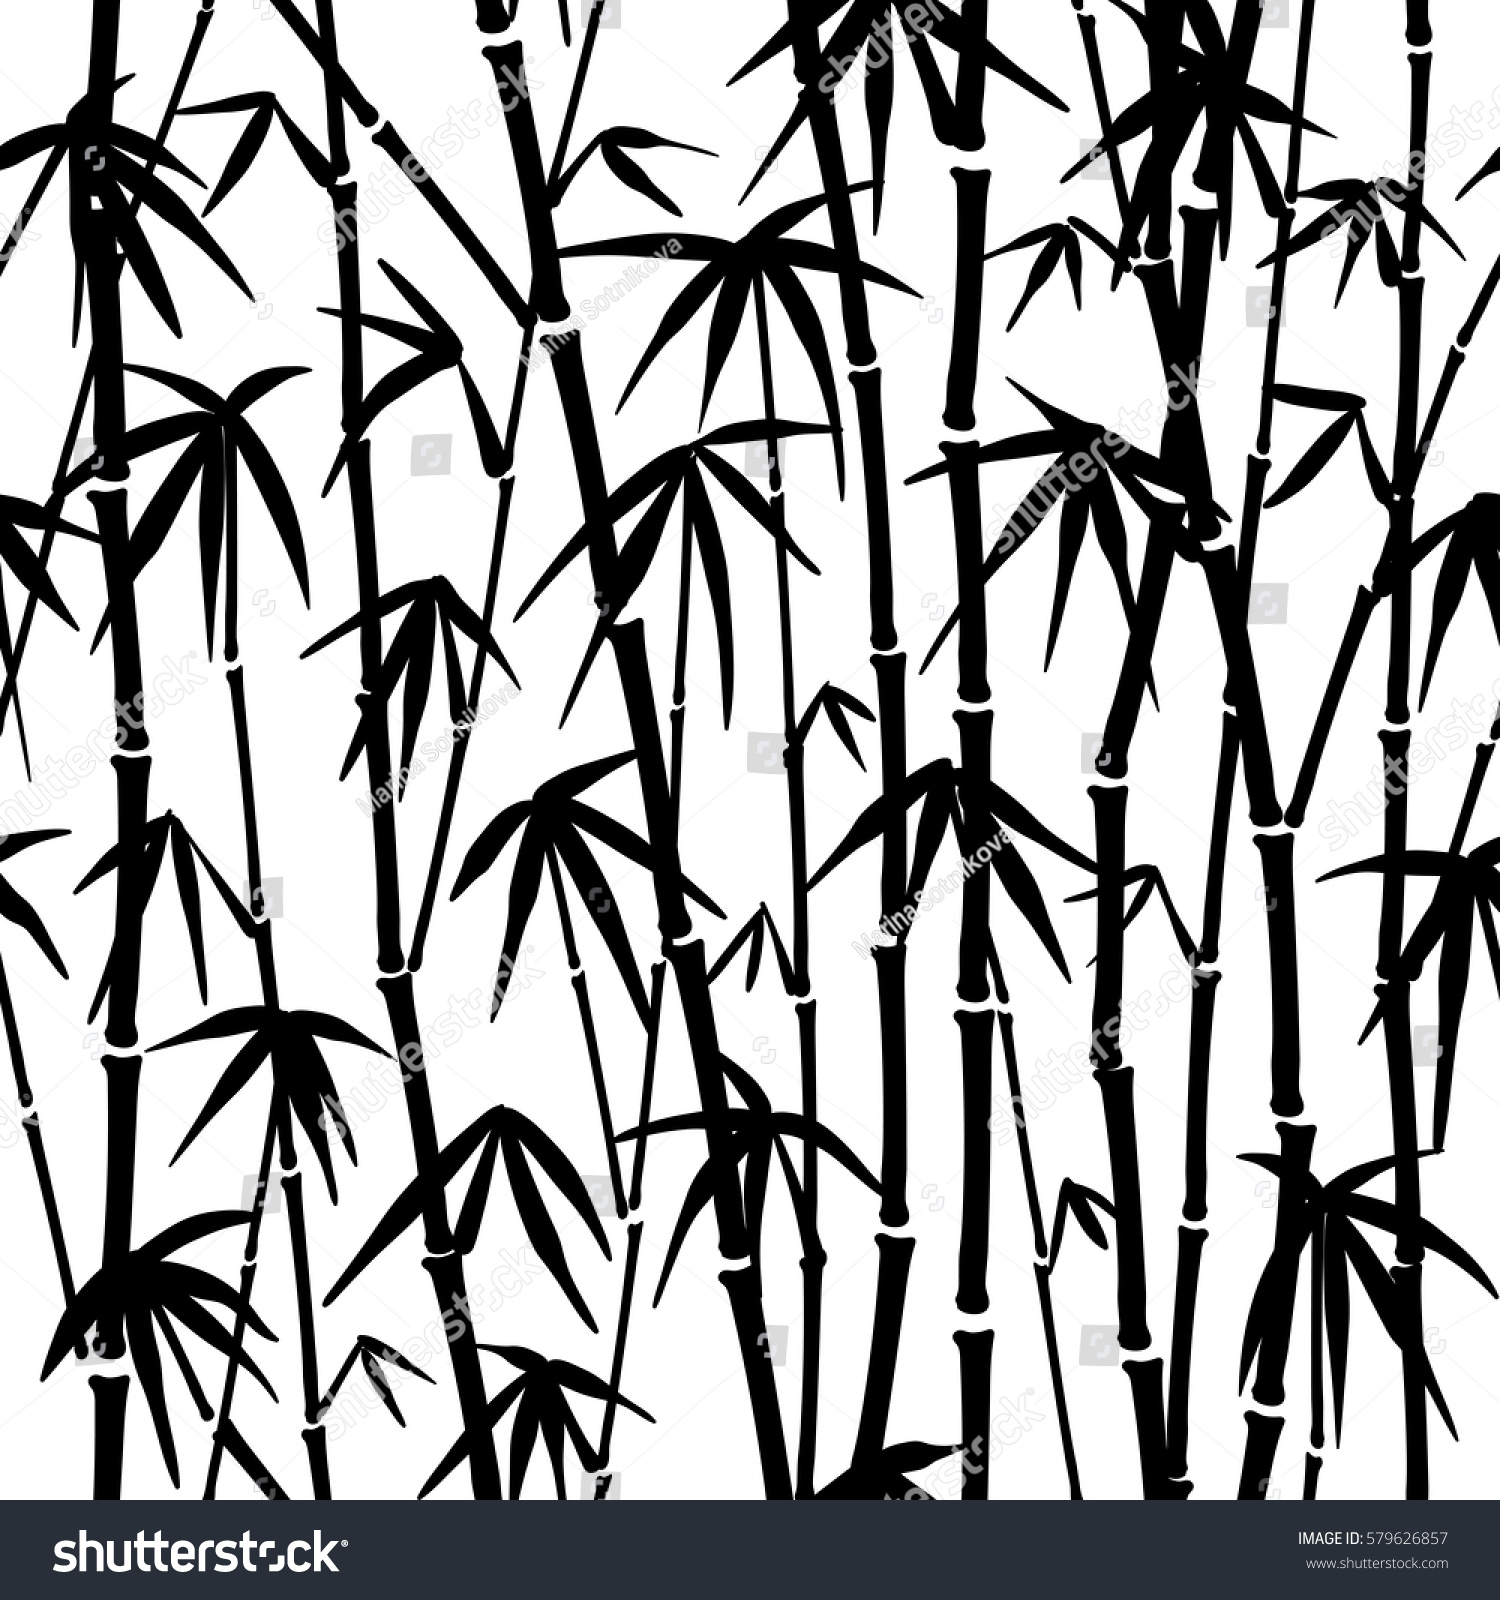 Seamless Pattern Black White Bamboo Stalks Stock Vector ...